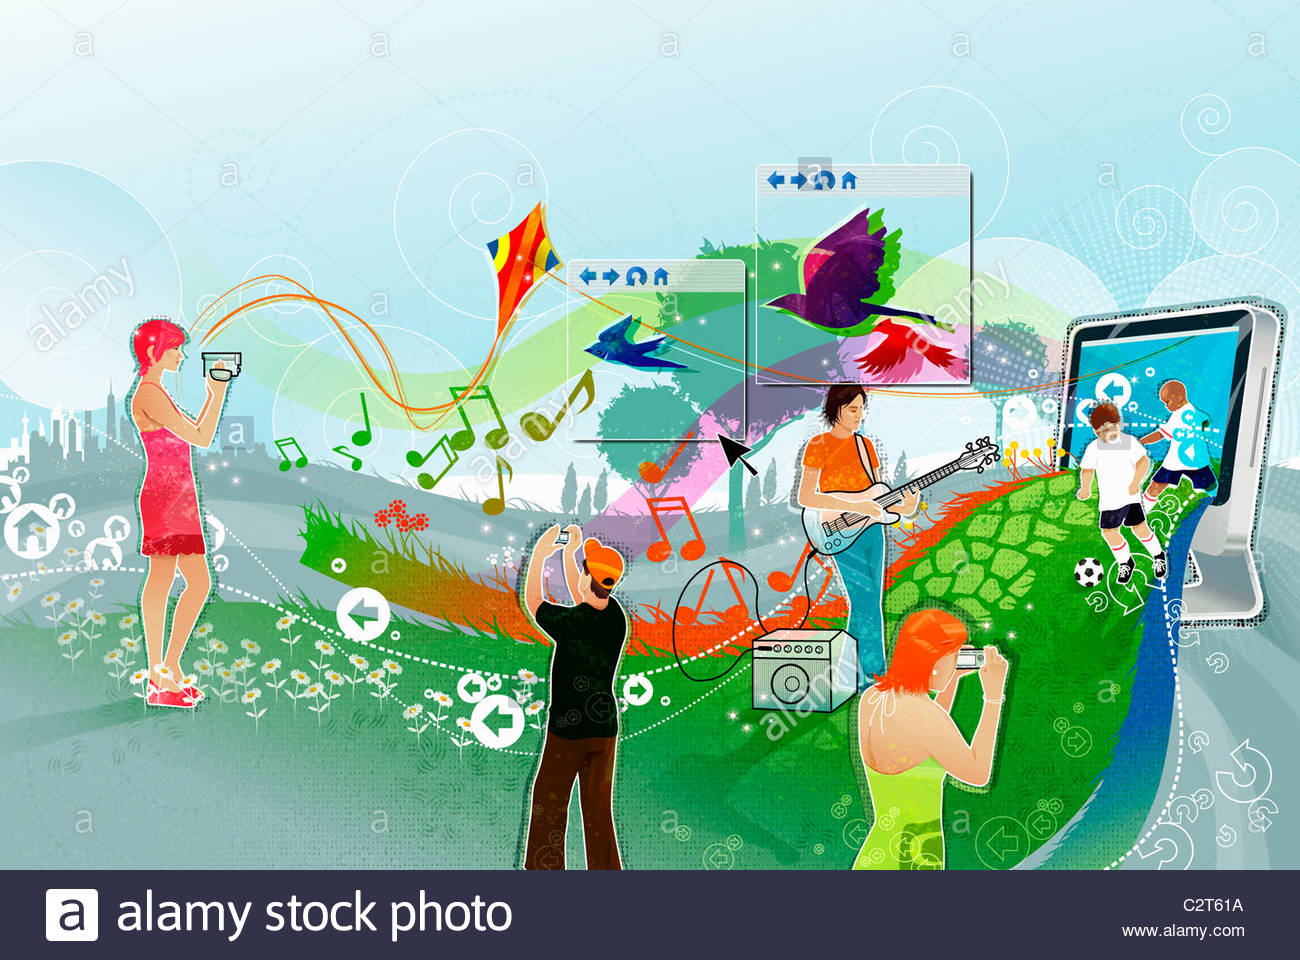 Montage of people using digital technology - Stock Image